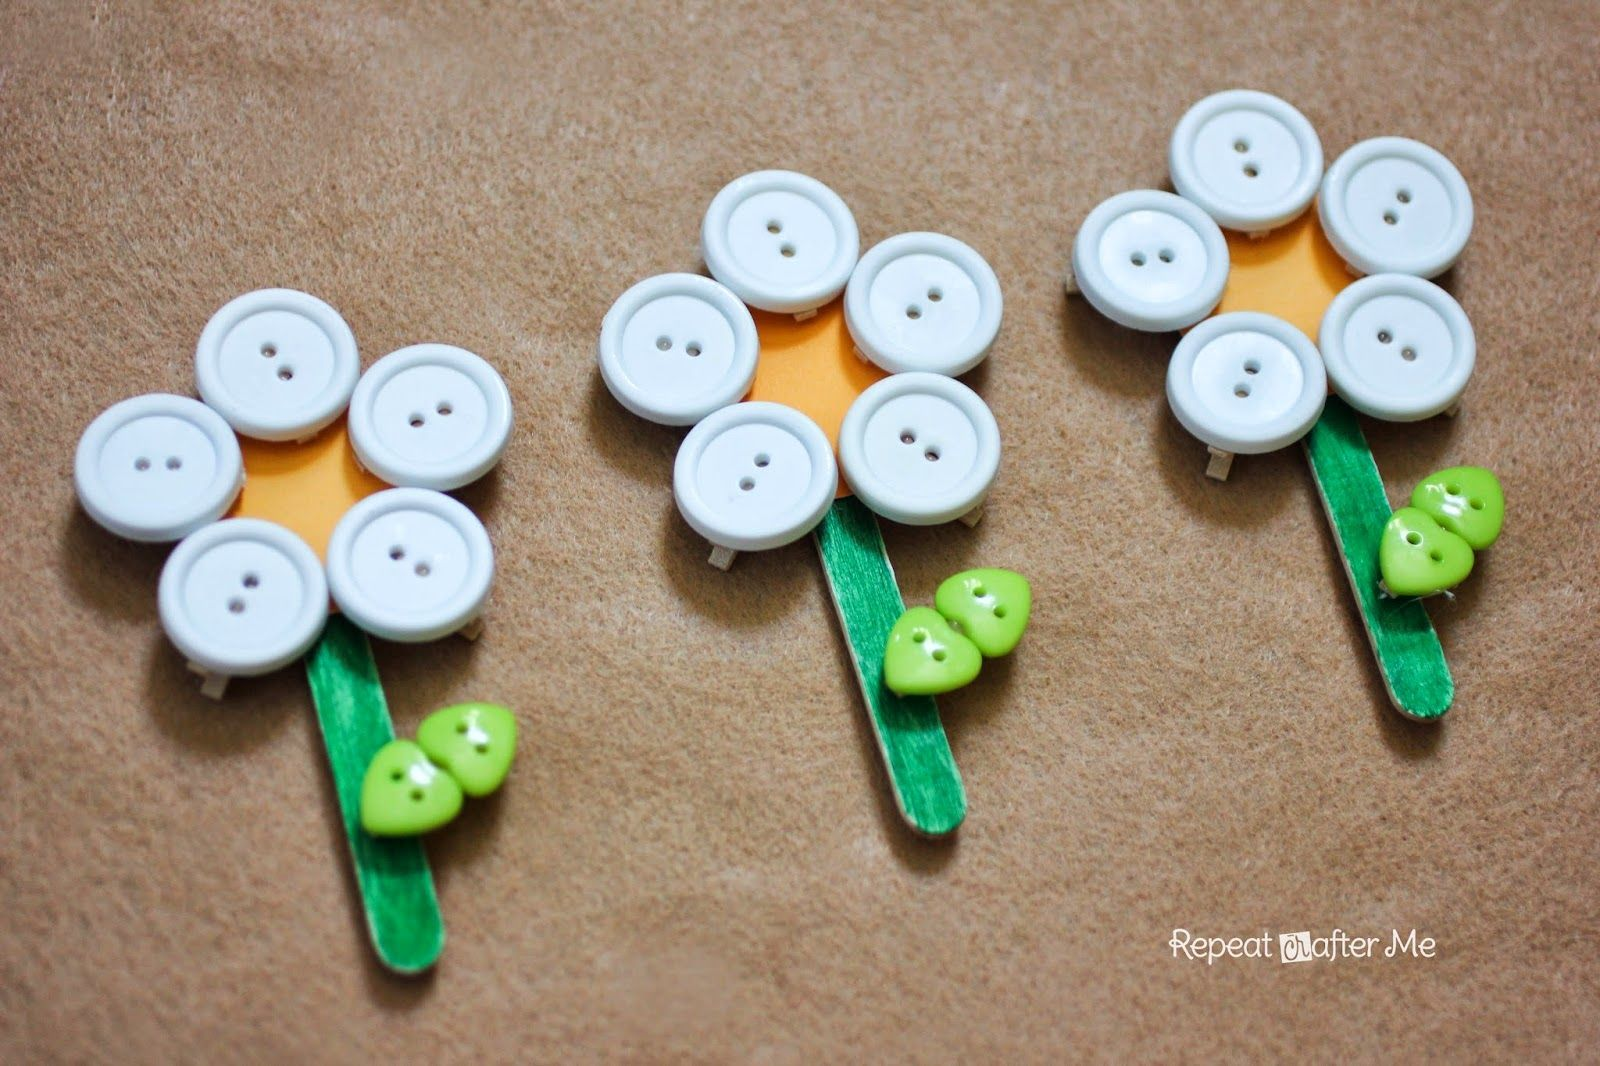 Clothespin Daisy Flowers Repeat Crafter Me: Button Clothespin Daisy Flowers- modify to make affordable for SWAPS for camp or sister to every Girl Scout Daisy visitRepeat Crafter Me: Button Clothespin Daisy Flowers- modify to make affordable for SWAPS for camp or sister to every Girl Scout Daisy visit